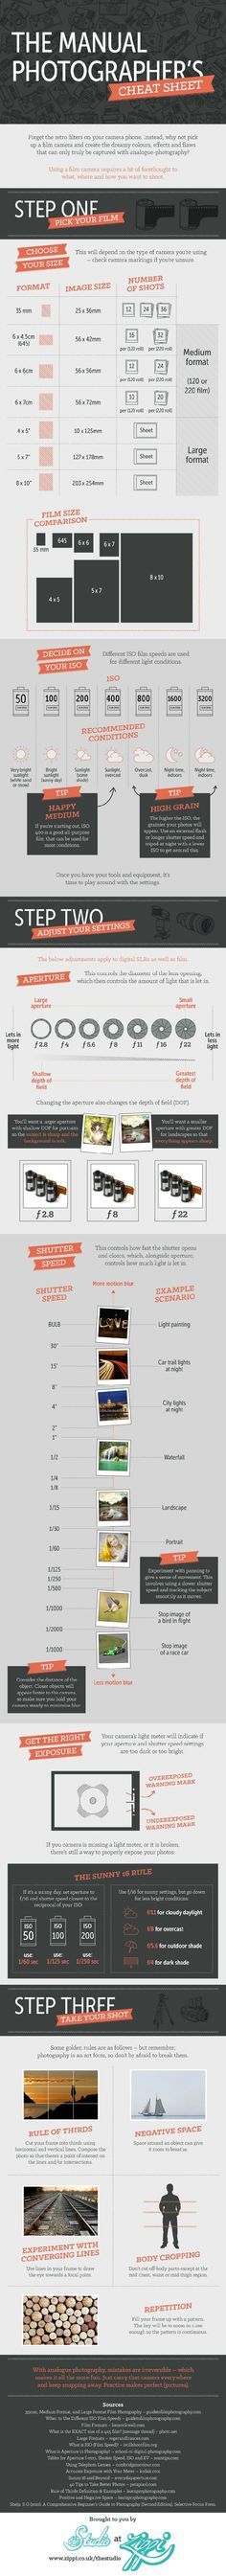 The Manual Photographer's Cheat Sheet: A Comprehensive Infographic for Beginners